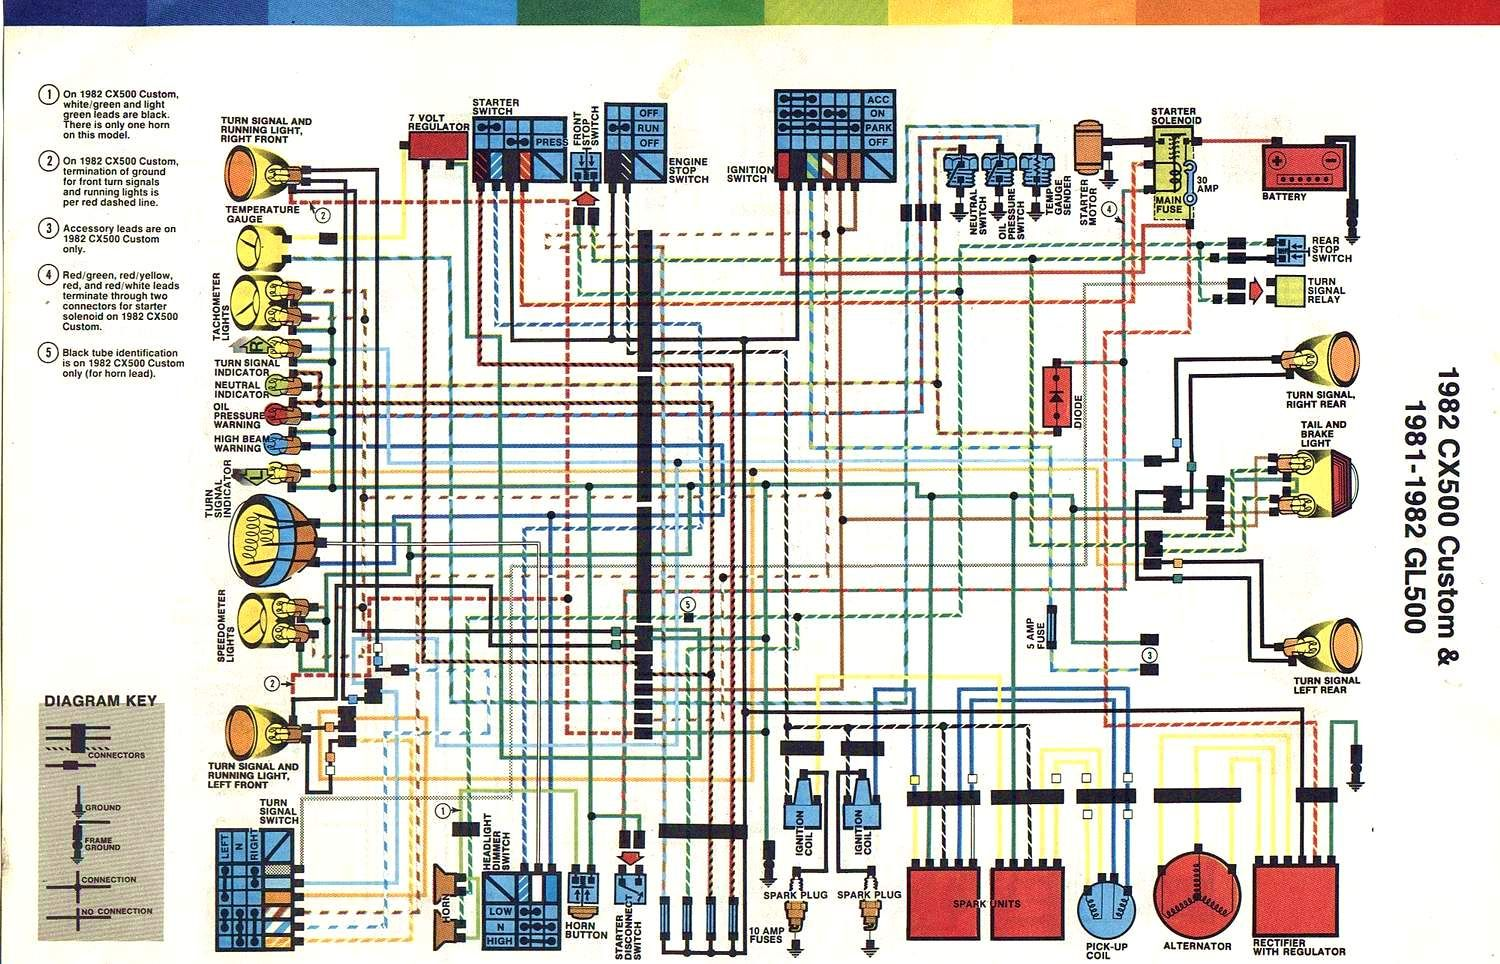 82 honda wiring 500 goldwing wiring diagram paper 87 honda cx500 wiring diagram [ 1500 x 964 Pixel ]